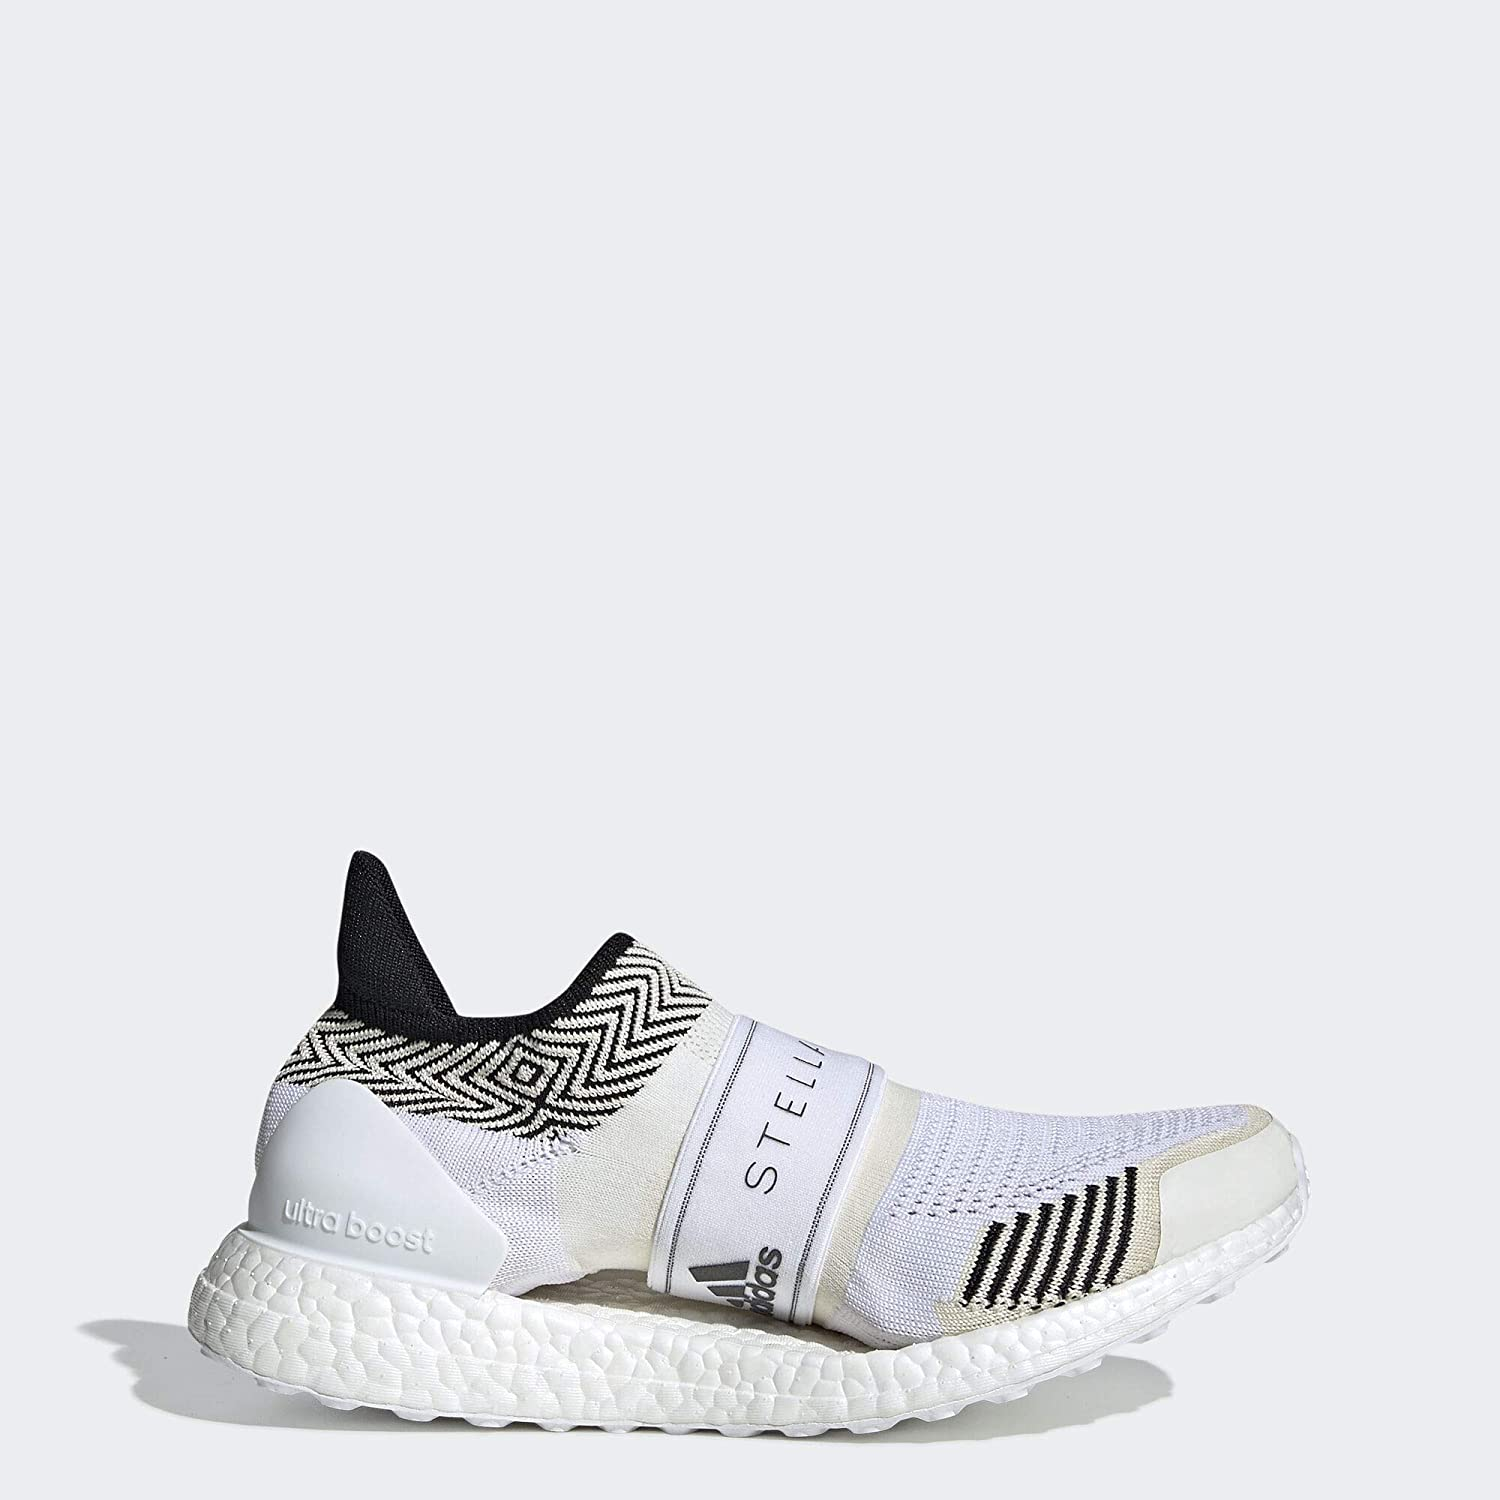 adidas Ultraboost X 3D Shoes Women's: : Chaussures